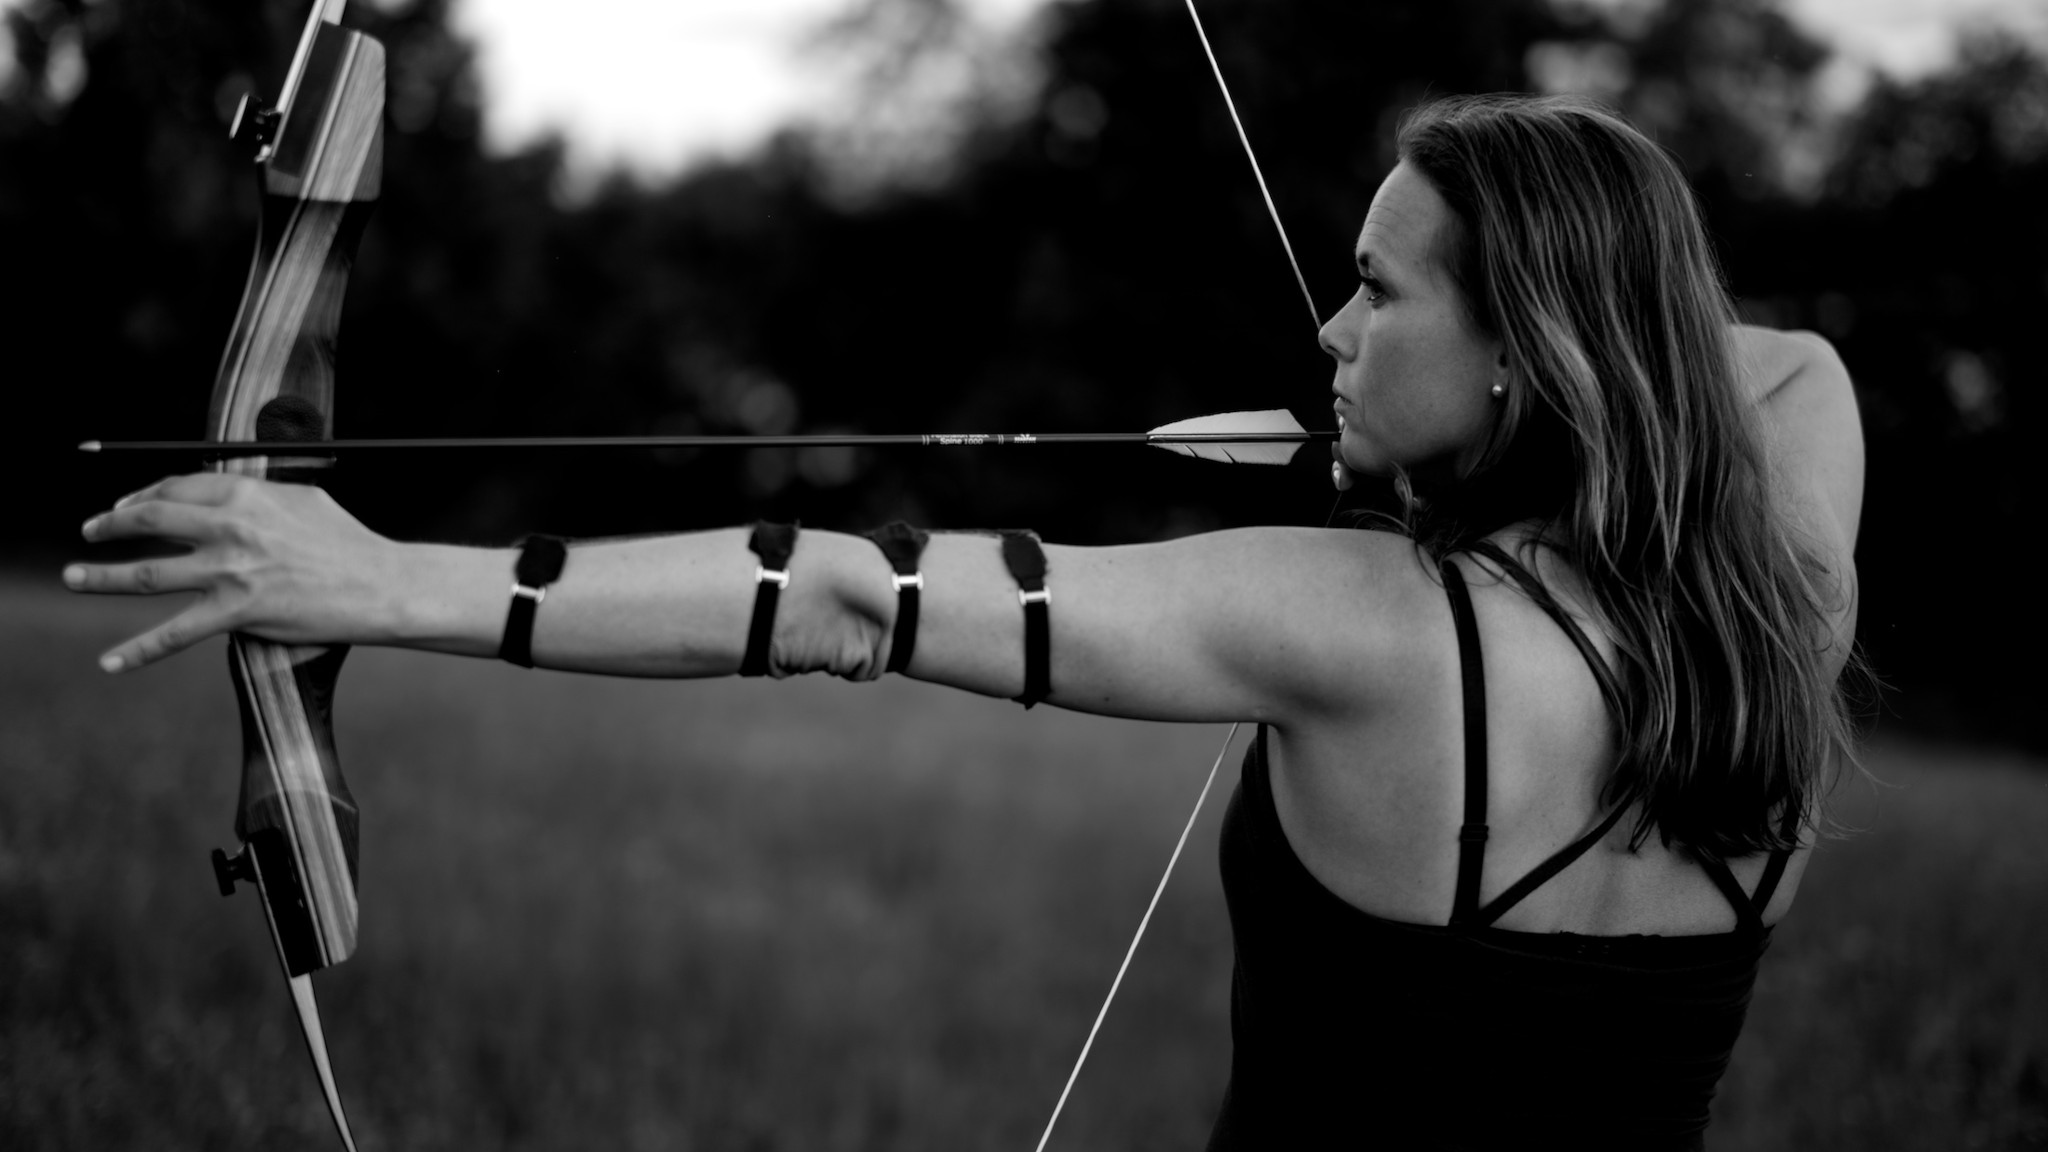 A black and white photo of a woman with a recurve bow nocked at full draw.